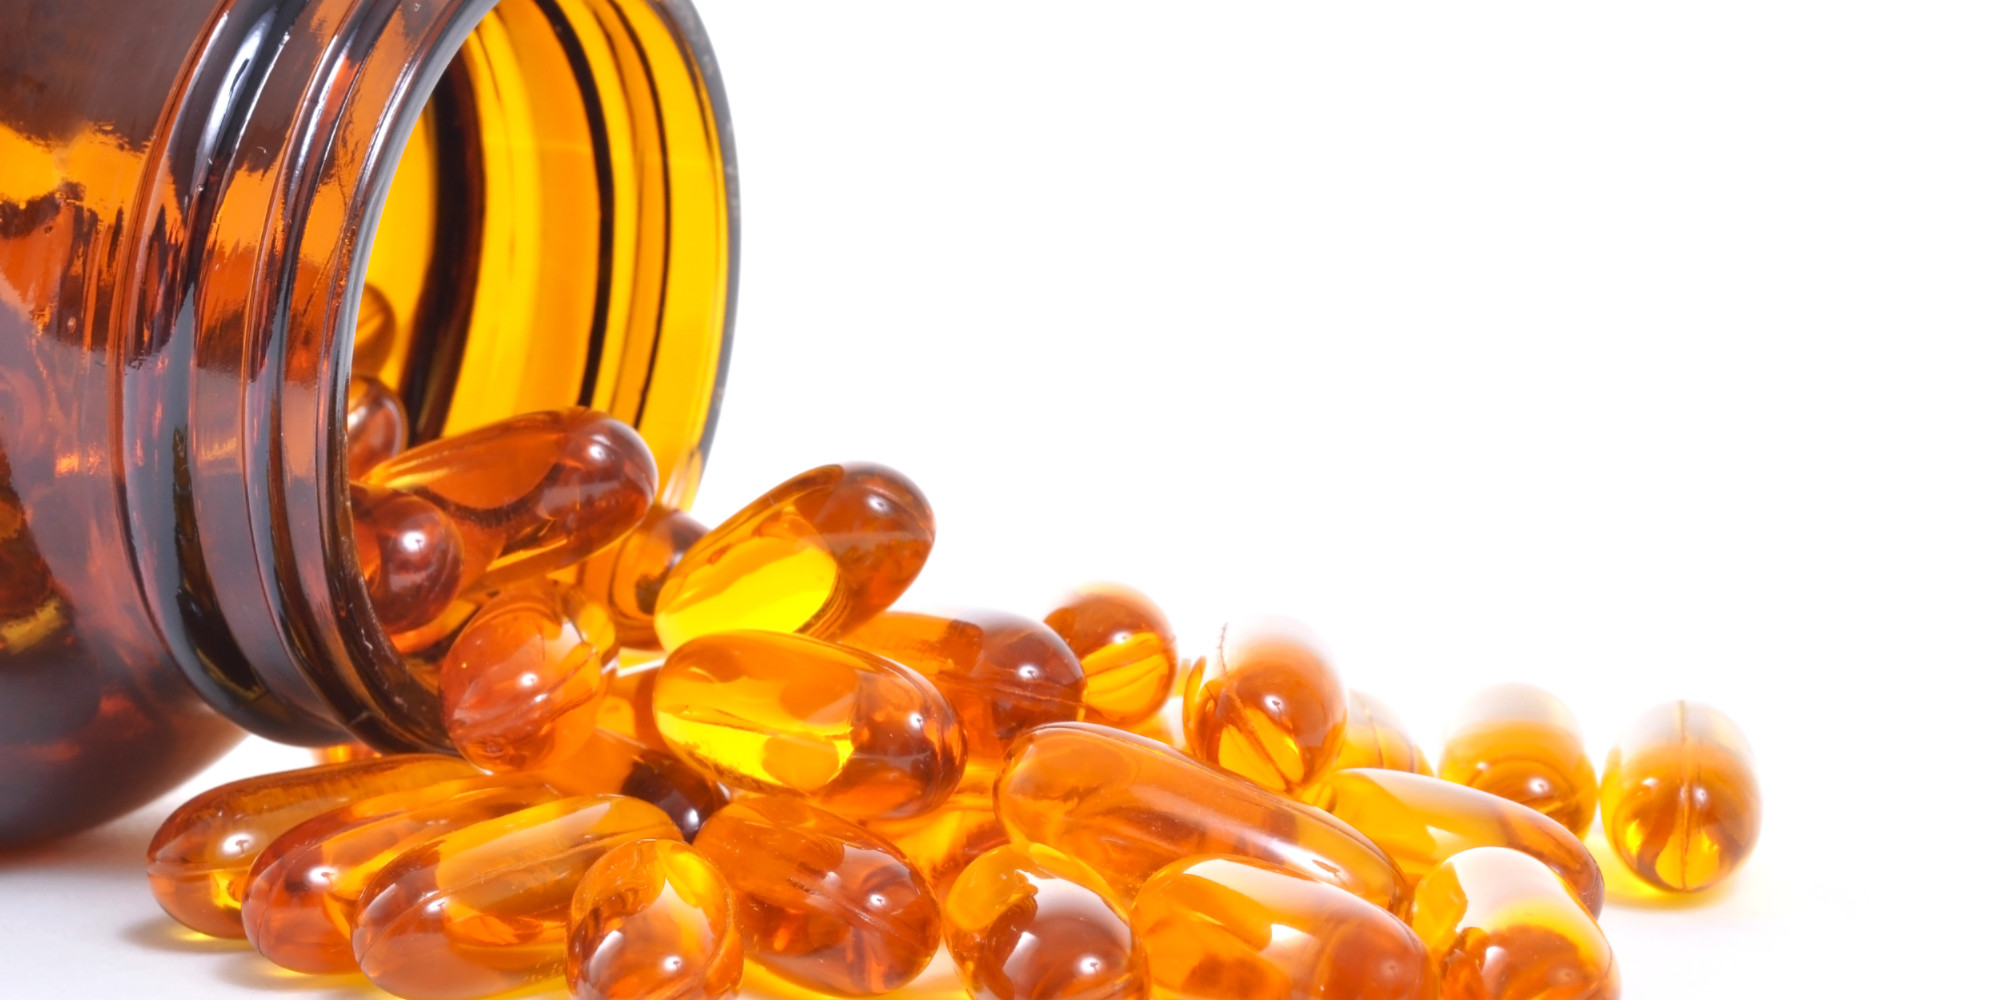 Cochrane negative review of omega-3 rebutted … and the